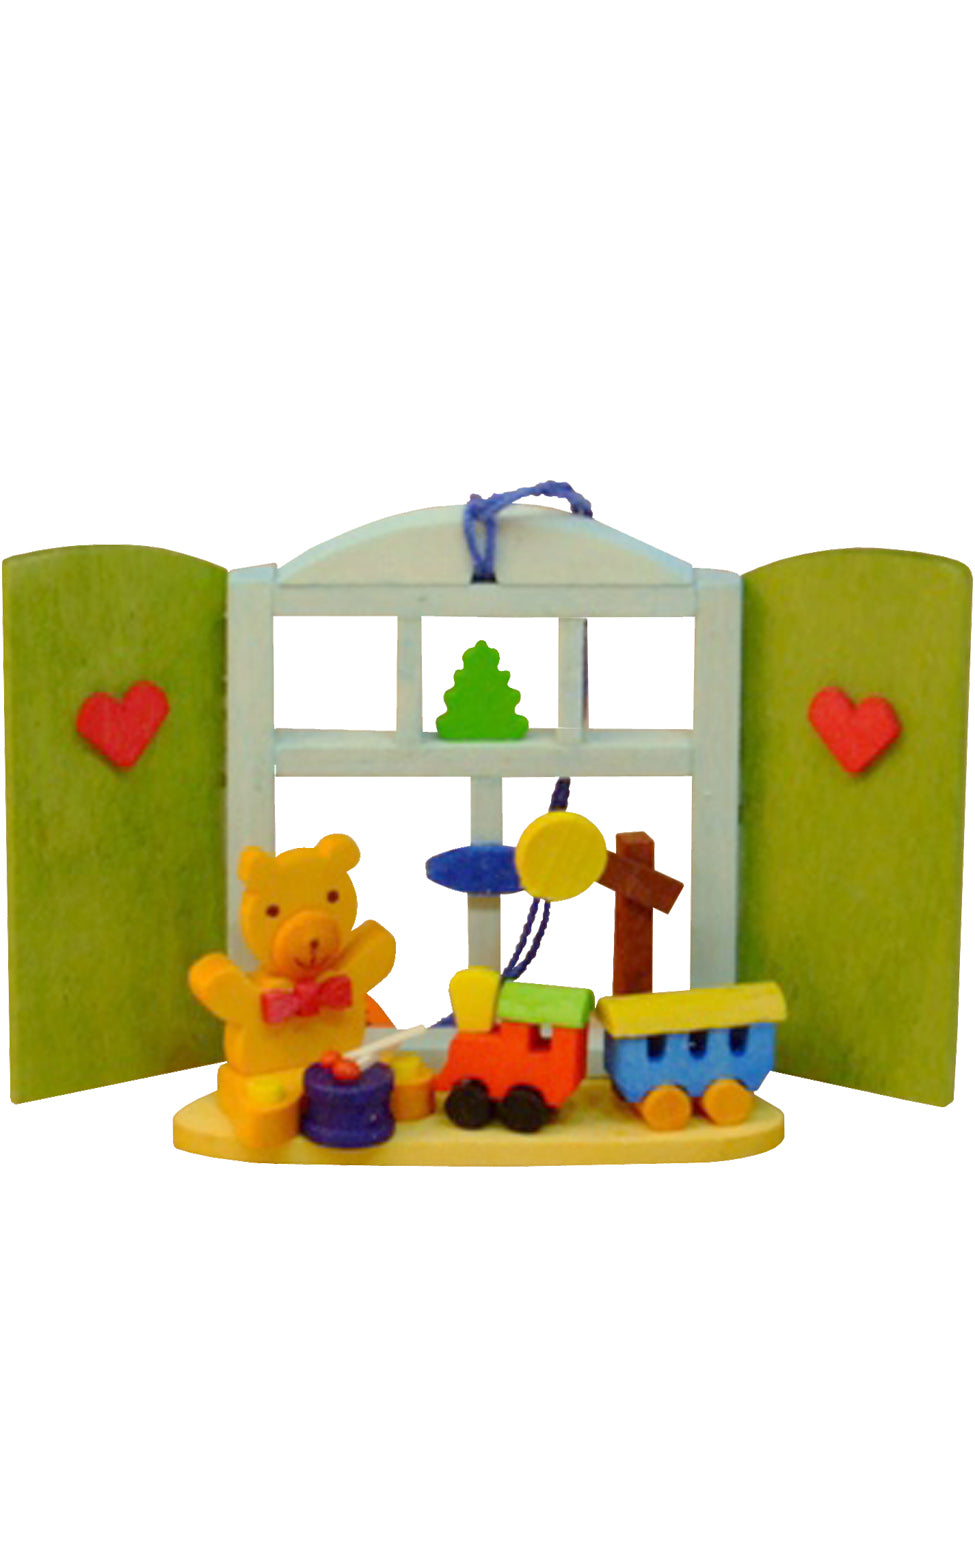 Graupner Ornament - Teddy with Toys/Window